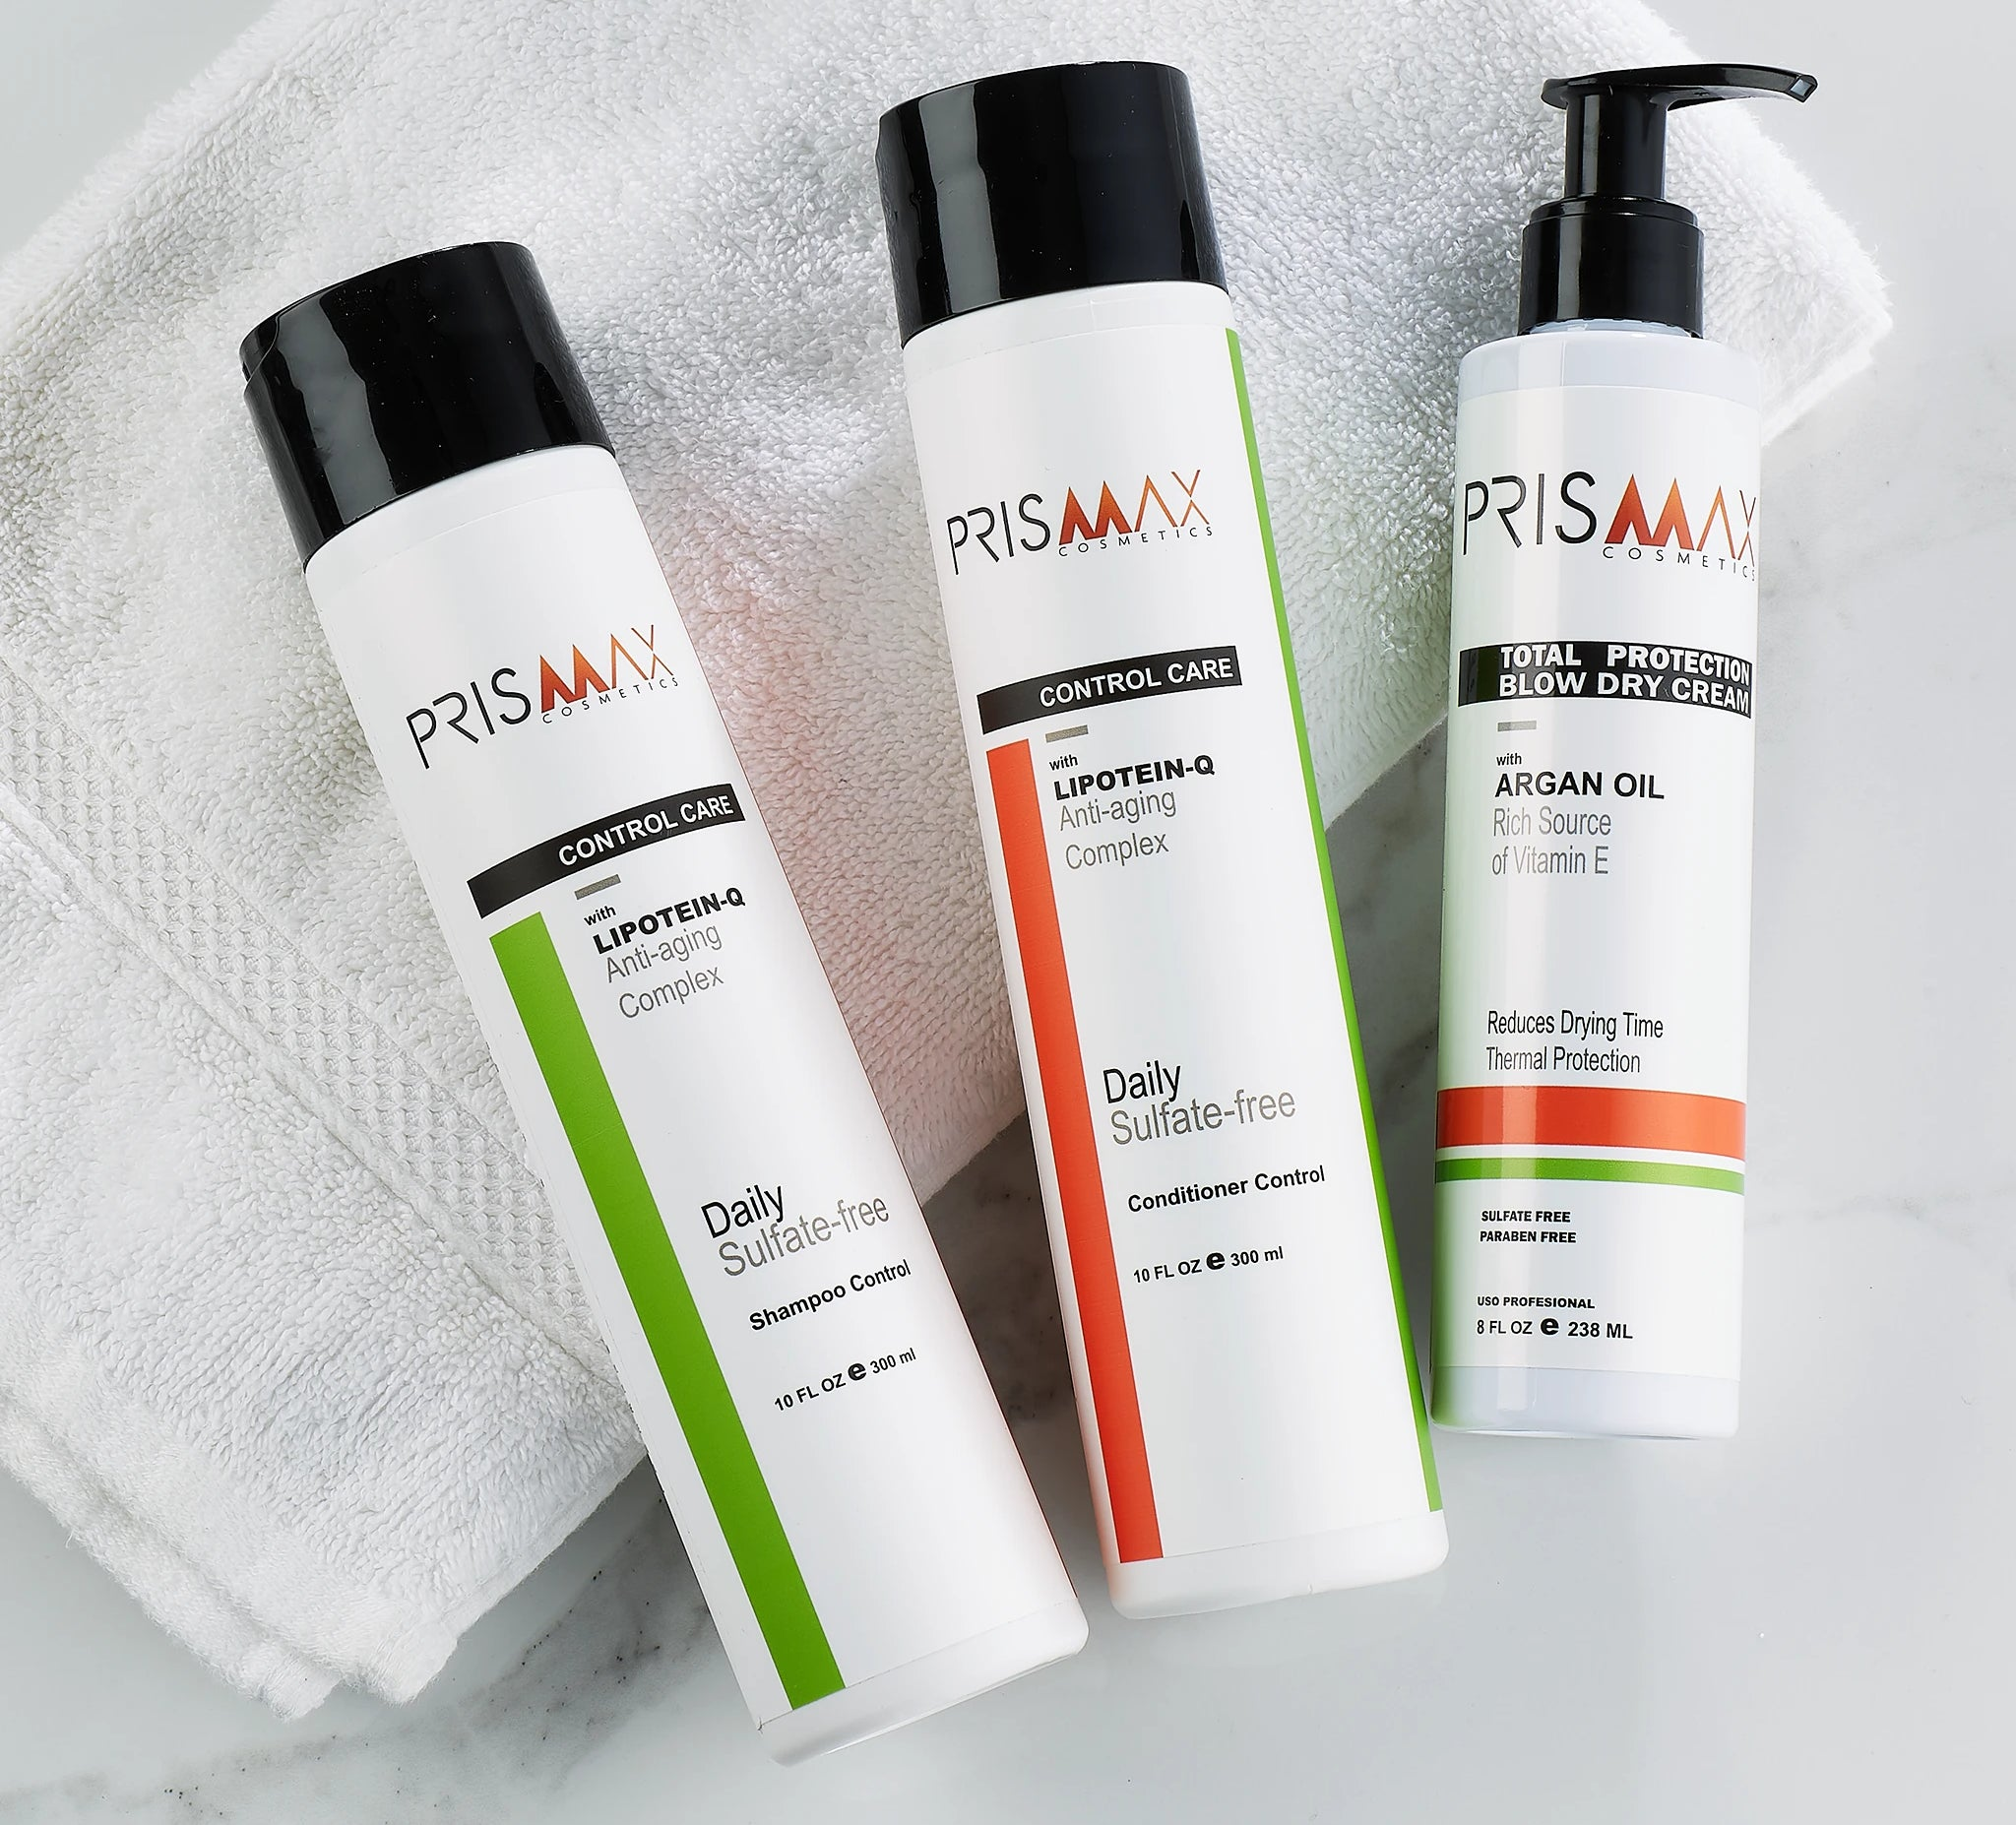 Prismax Shampoos and Conditioners Collection